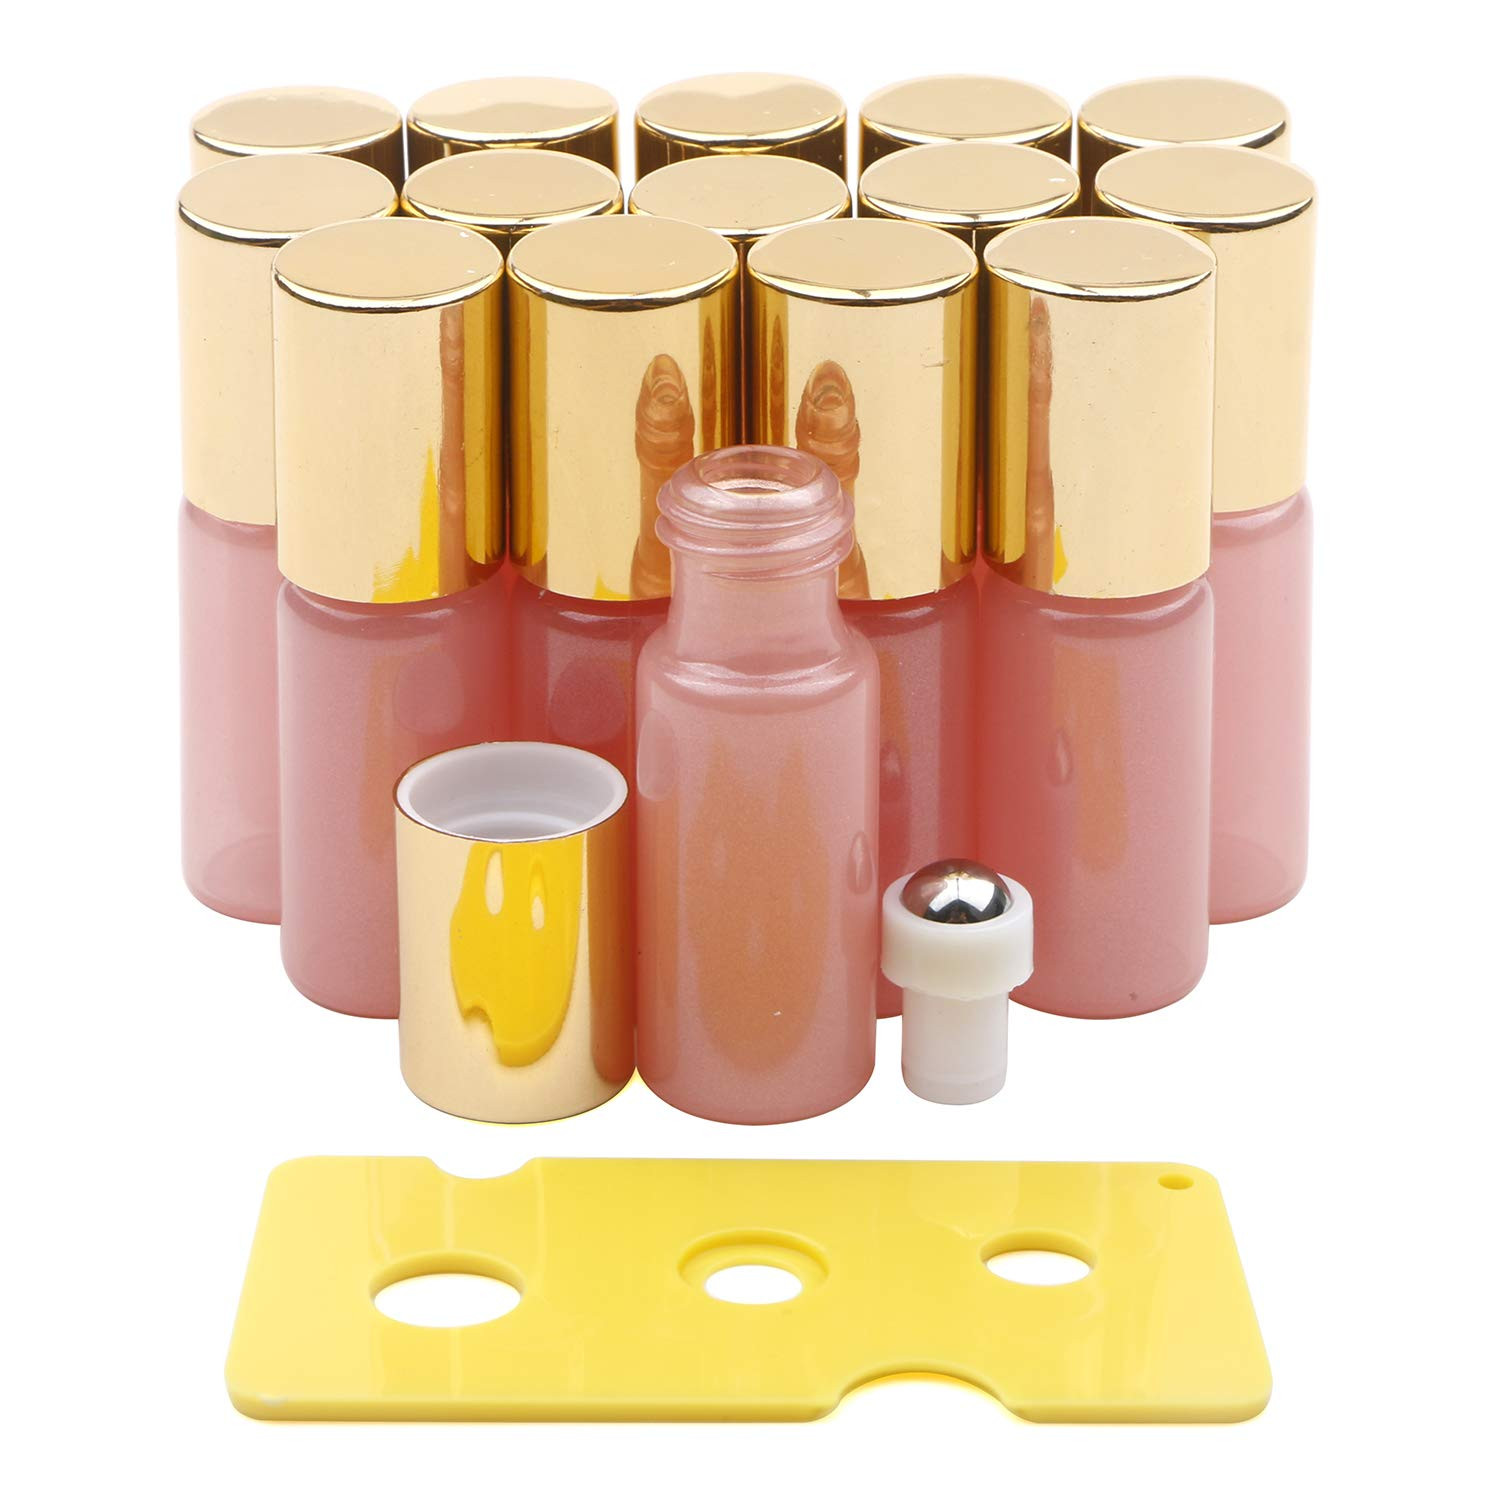 Glass Roller Bottles, Kesell 15 Pack 5ml Pearl Pink Essential Oil Roller Bottles with Stainless Steel Roller Ball and Golden Cap and Opener by Kesell